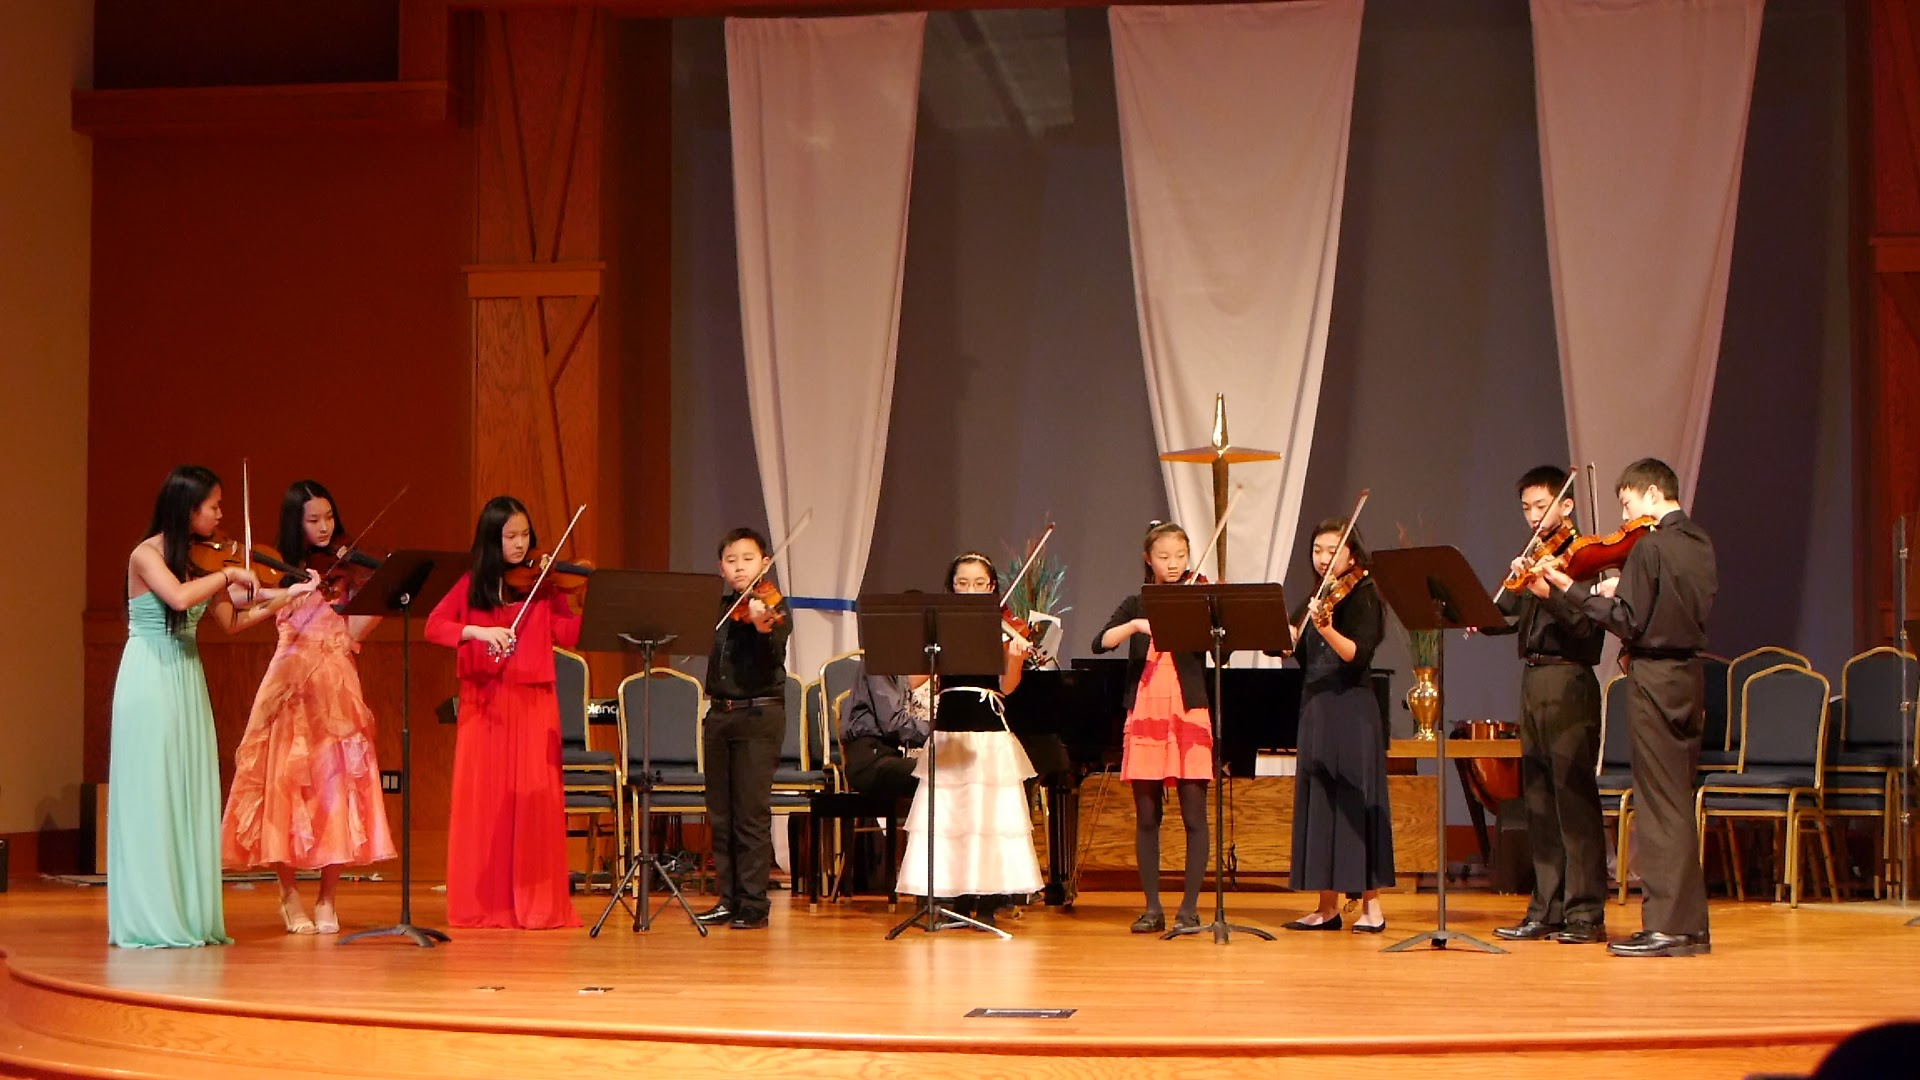 The first of our two violin ensembles